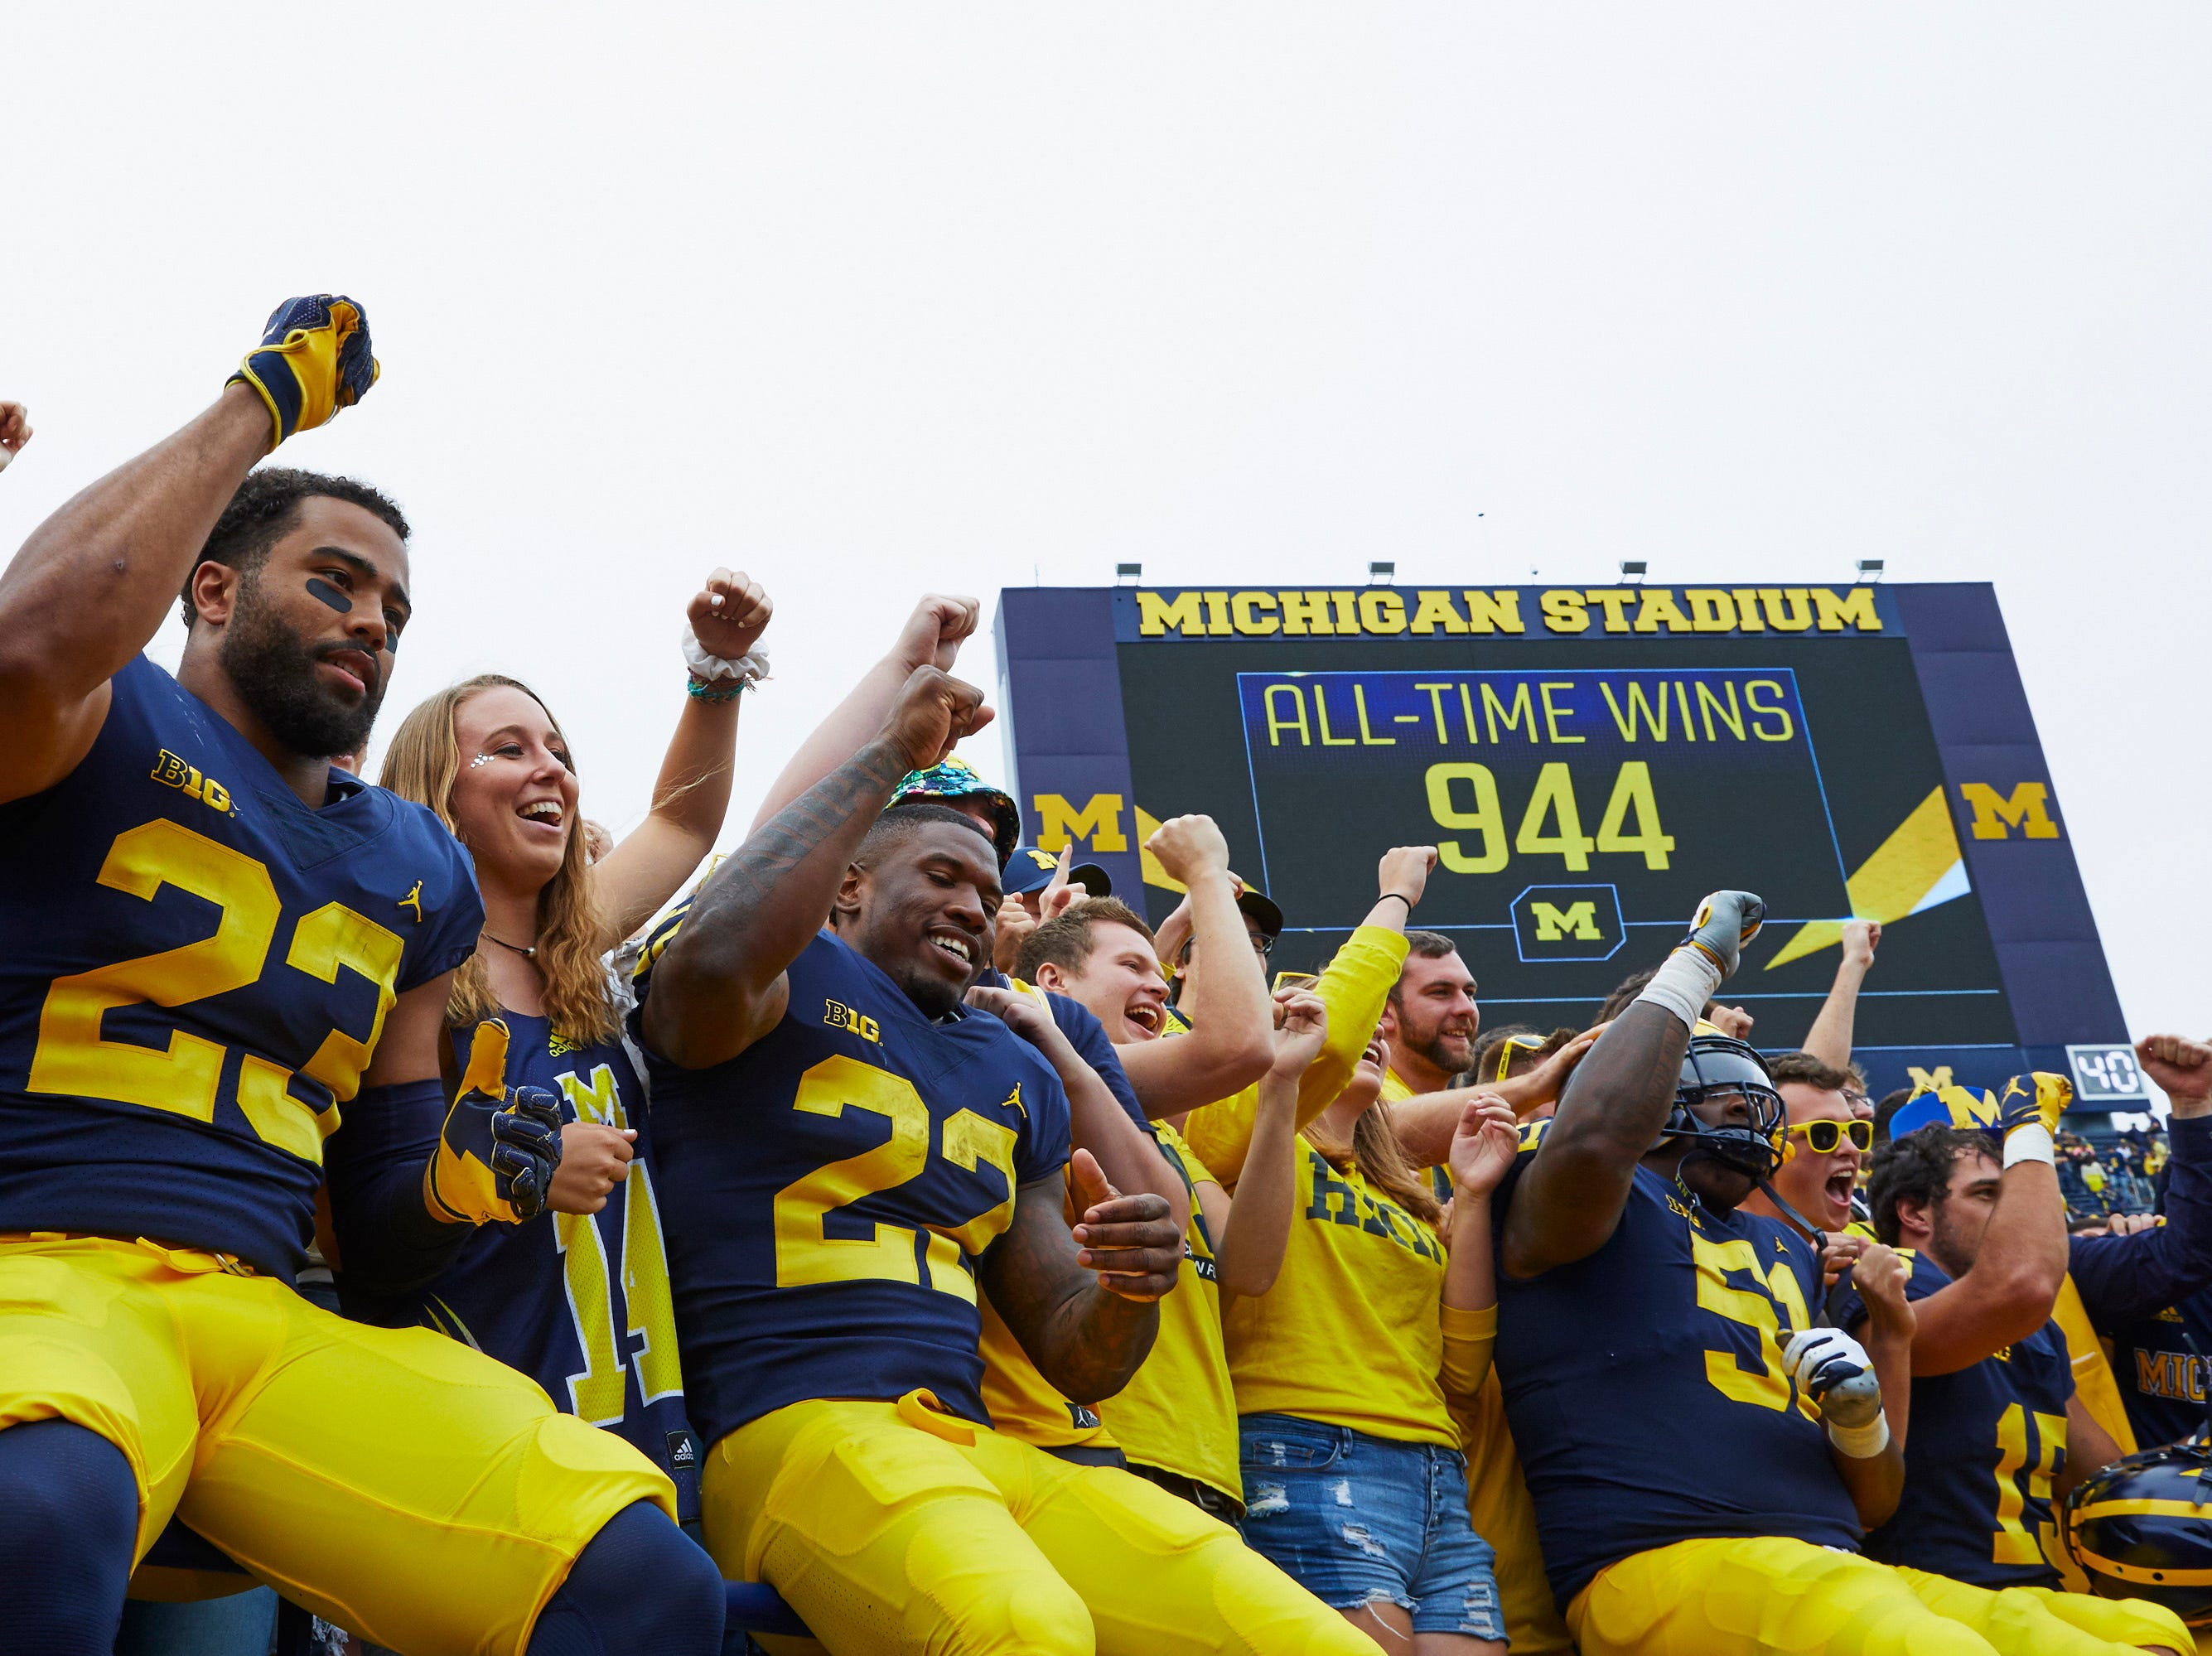 Sep 8, 2018; Ann Arbor, MI, USA; Michigan Wolverines defensive back Tyree Kinnel (23) and  running back Karan Higdon (22) celebrate in the student section after a game against the Western Michigan Broncos at Michigan Stadium. Mandatory Credit: Rick Osentoski-USA TODAY Sports